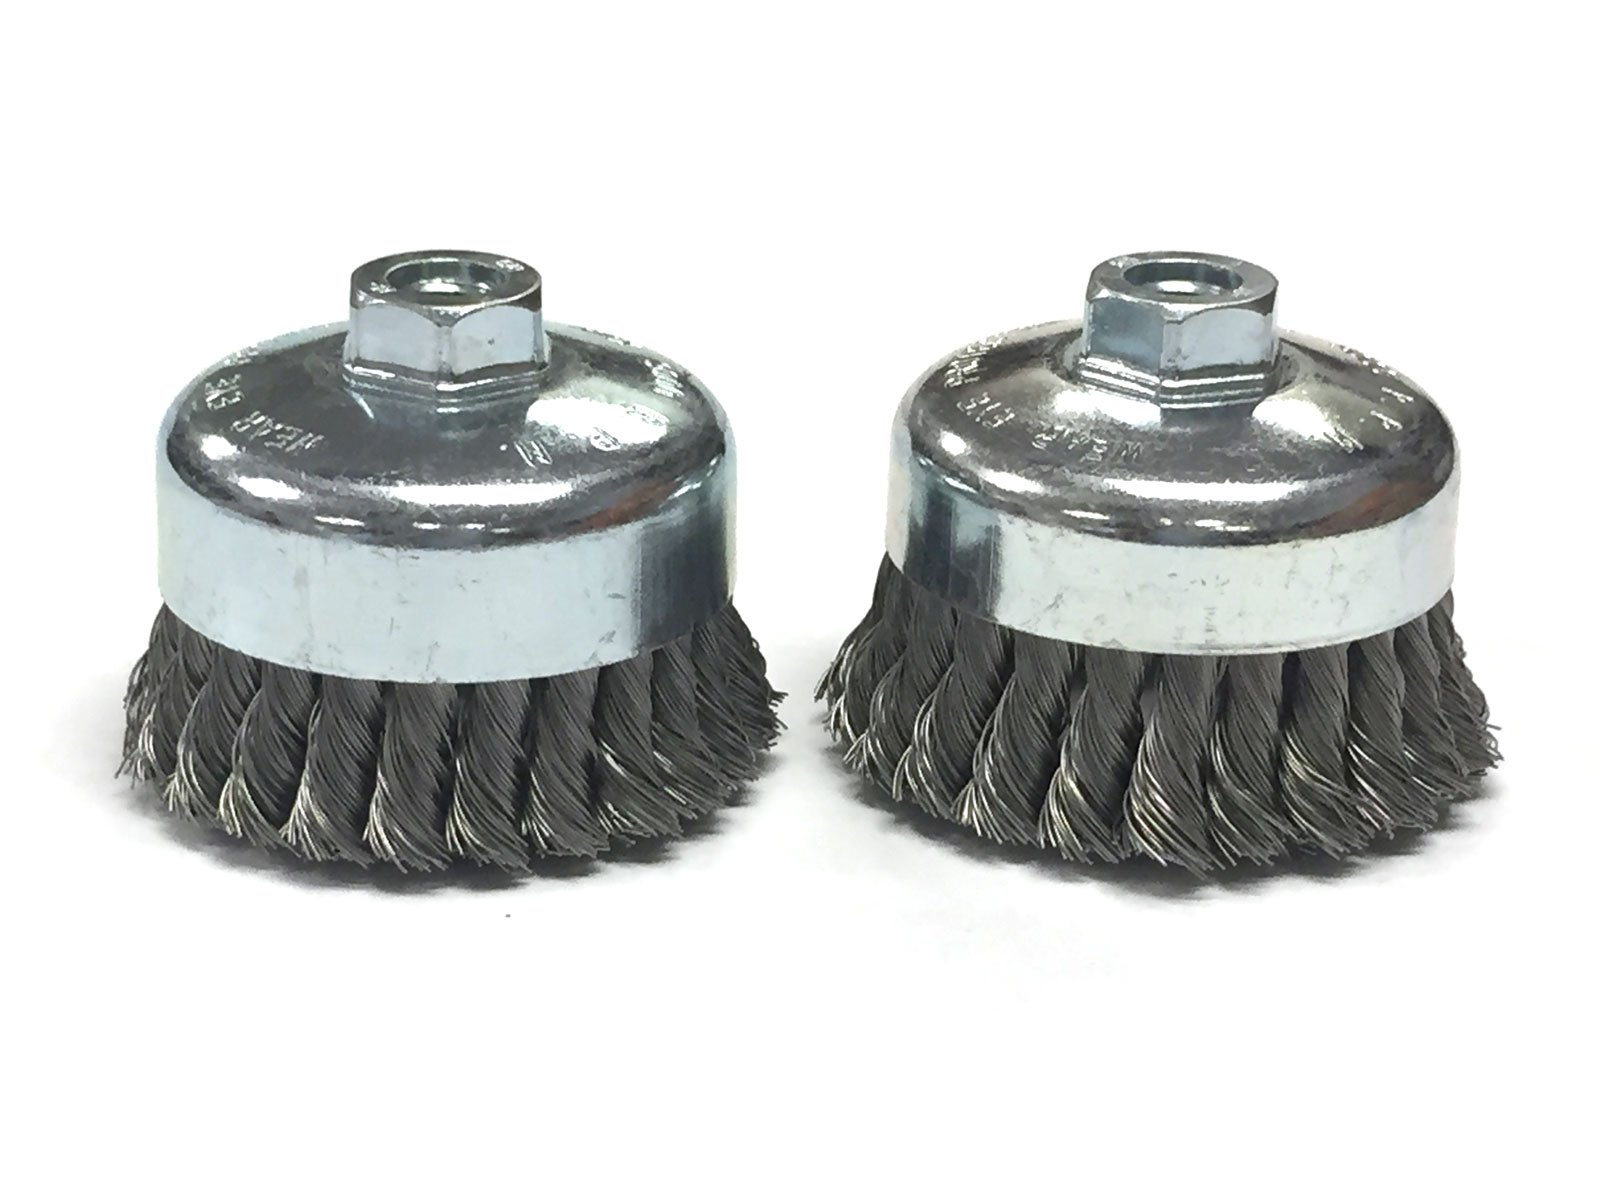 4'' Dia Knot Style Cup Brush - Carbon Steel Wire - 2 Pack